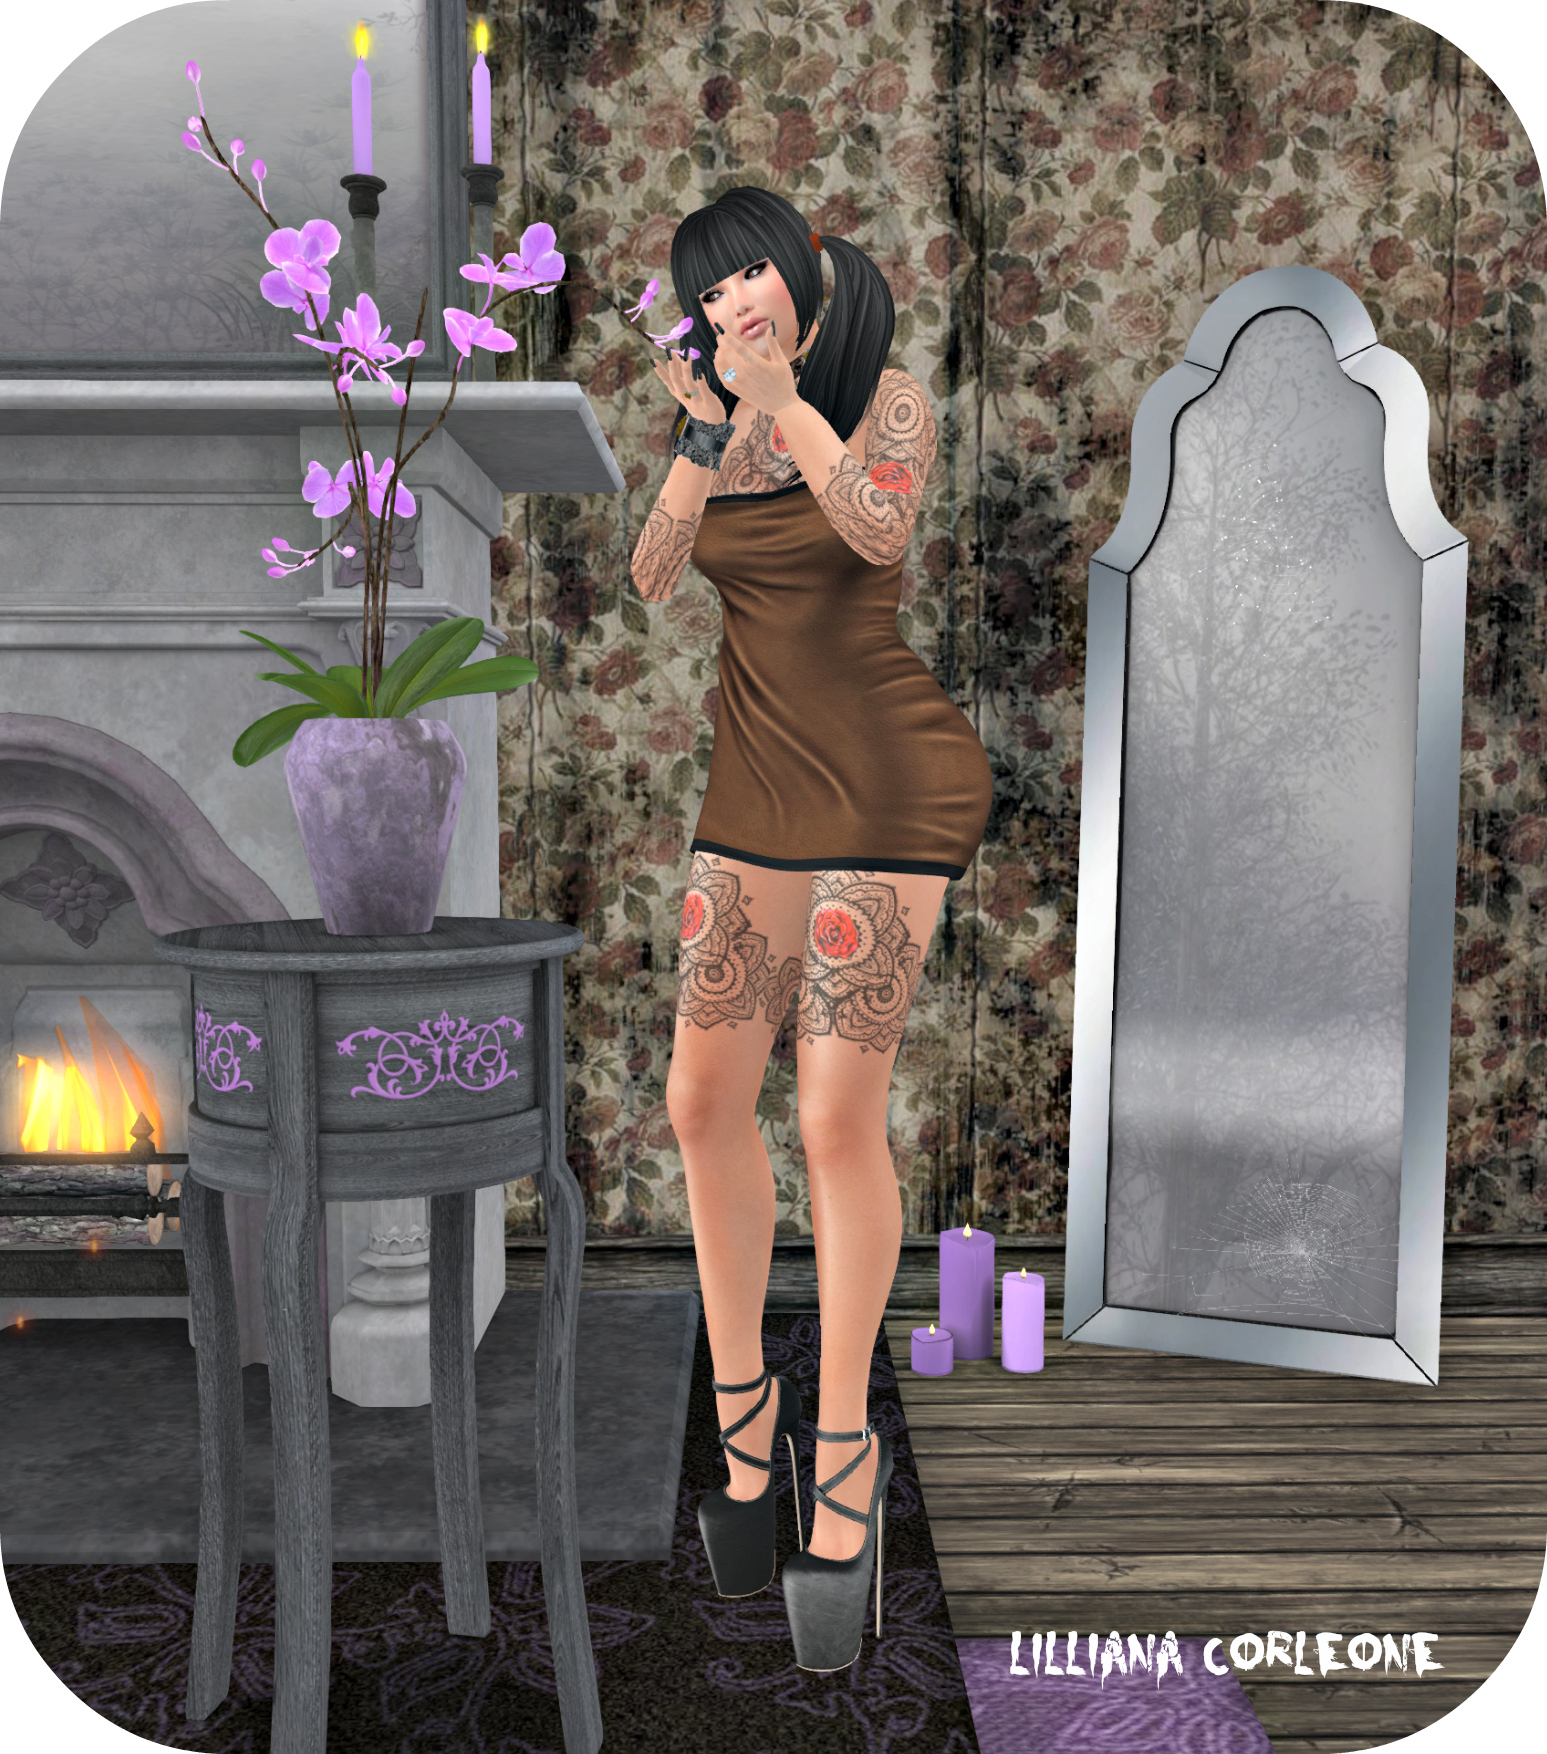 october-20th-blog-post-photo-1_cropped